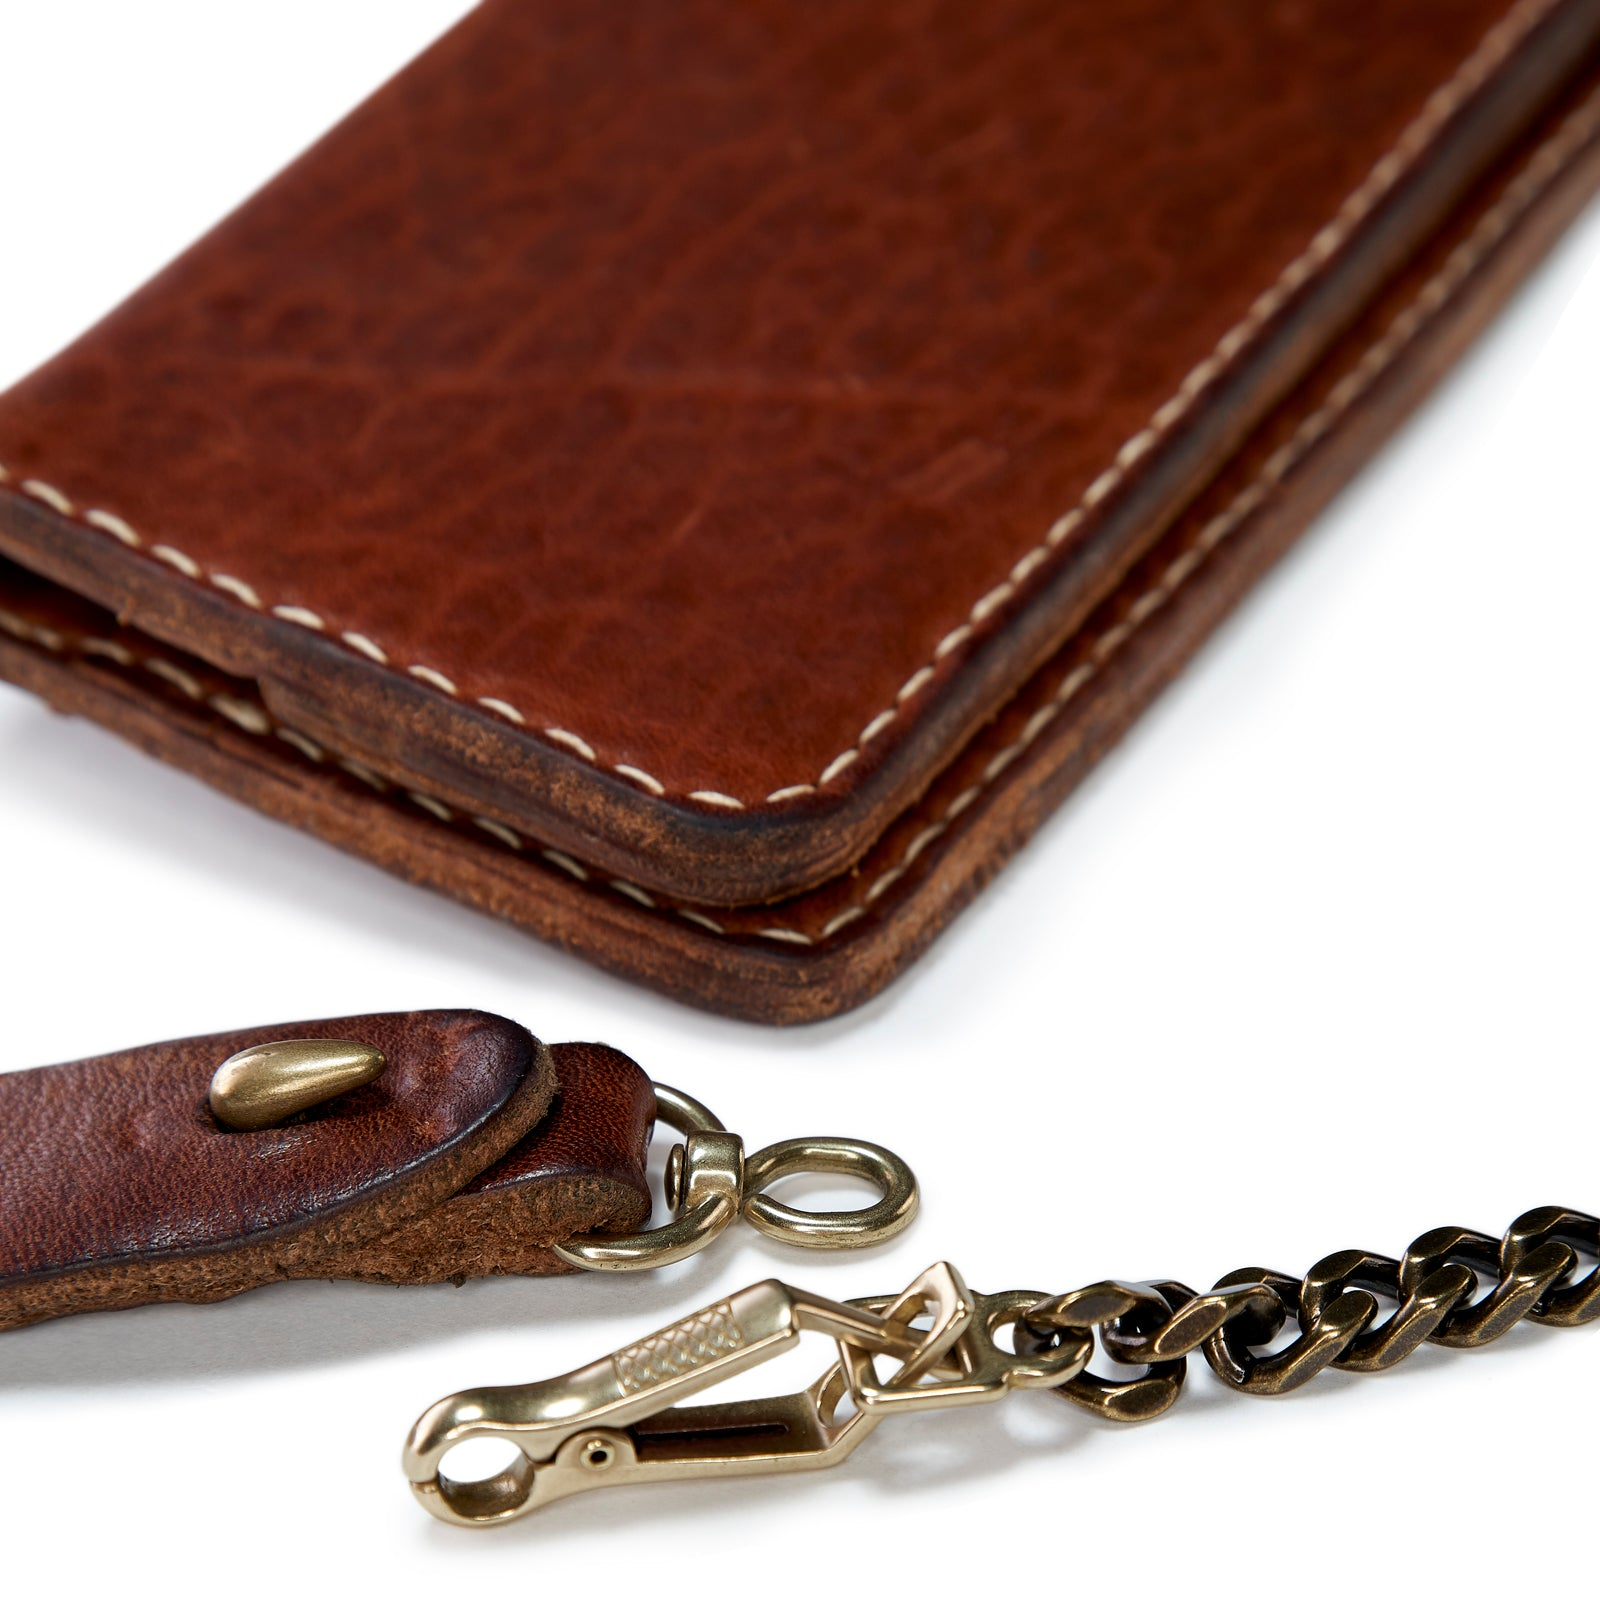 Long Vintage Stone-Washed Wallet (SPECIAL-NO CHAIN)